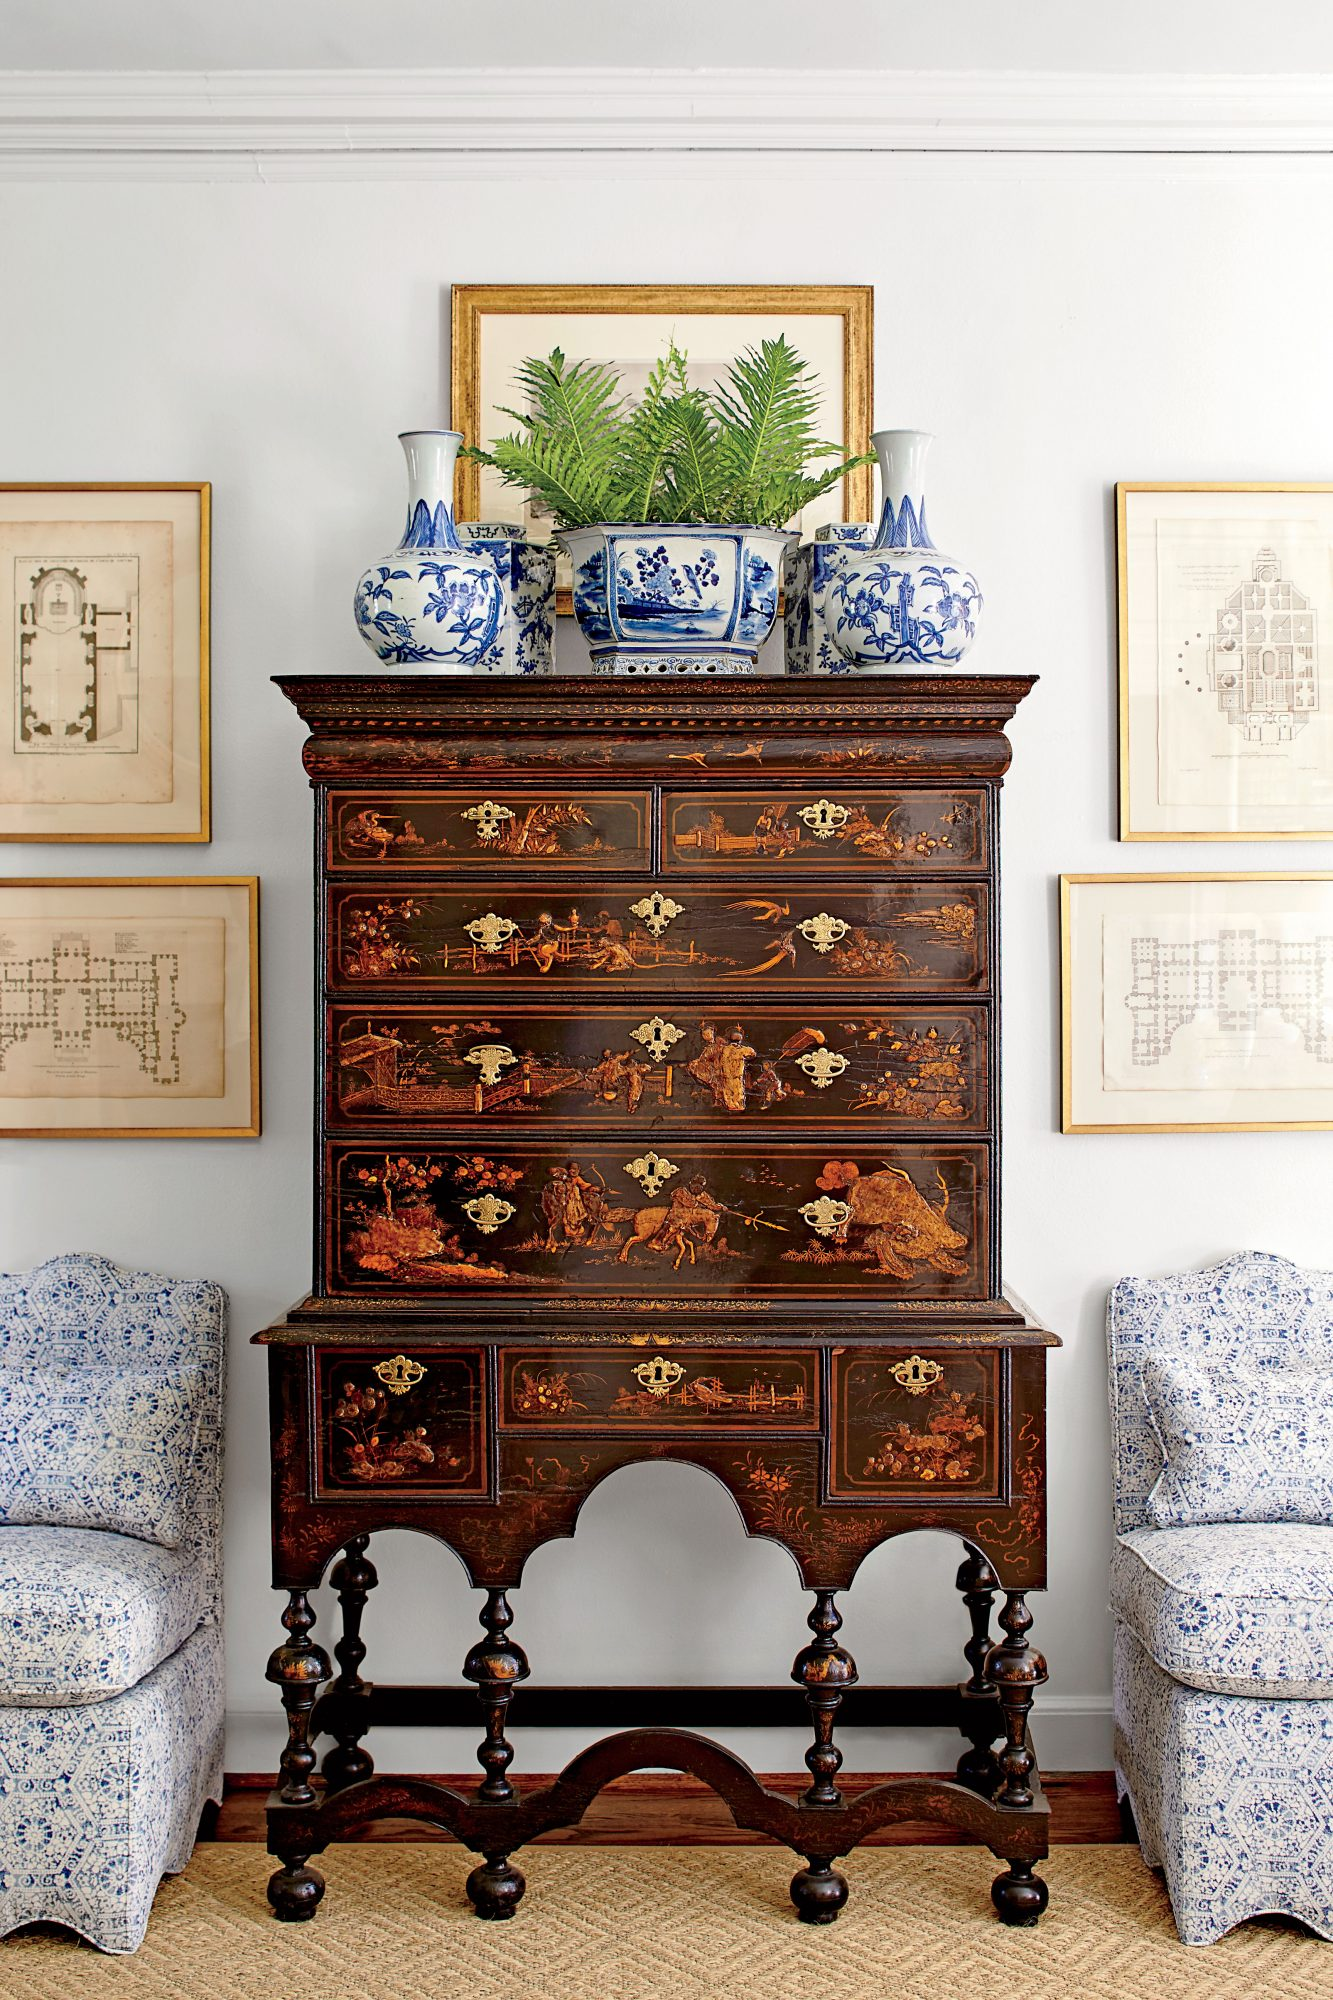 Furniture - Best Things To Buy At An Estate Sale - Southern Living